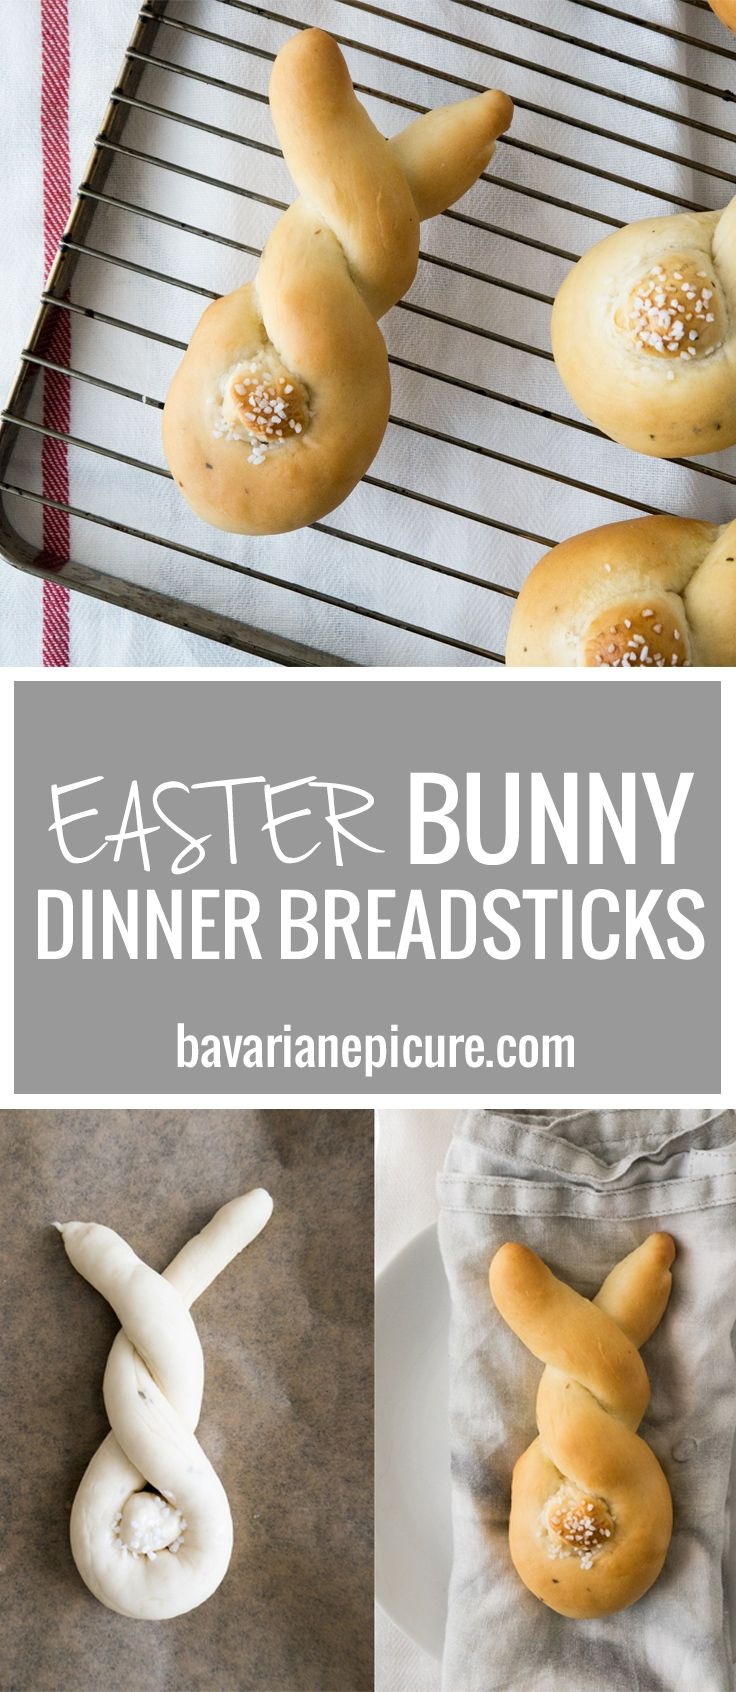 These Easter Bunny Dinner Breadsticks are so easy to make and perfect for brunch or dinner! Made from homemade yeast dough and so cute with their salty tails. To make everyone at your table happy, I have a vegan and a non-vegan version for you.